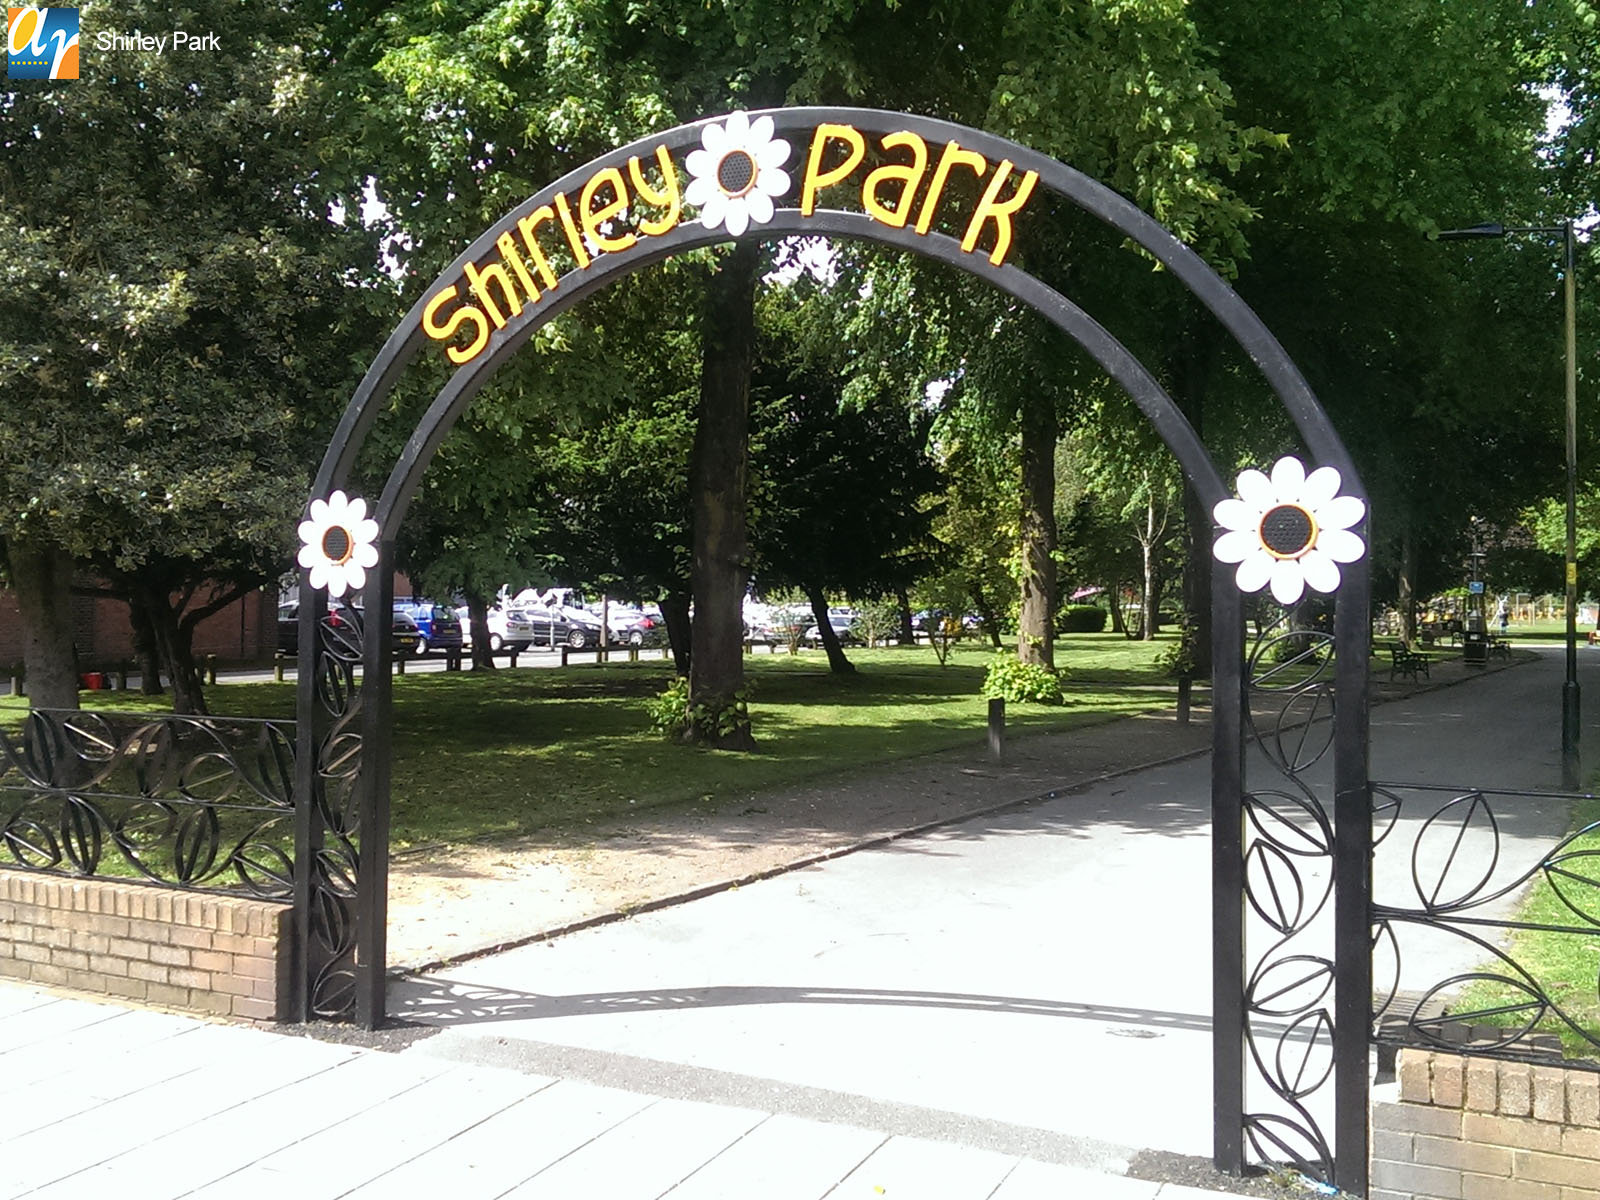 Shirley Park decorative archway